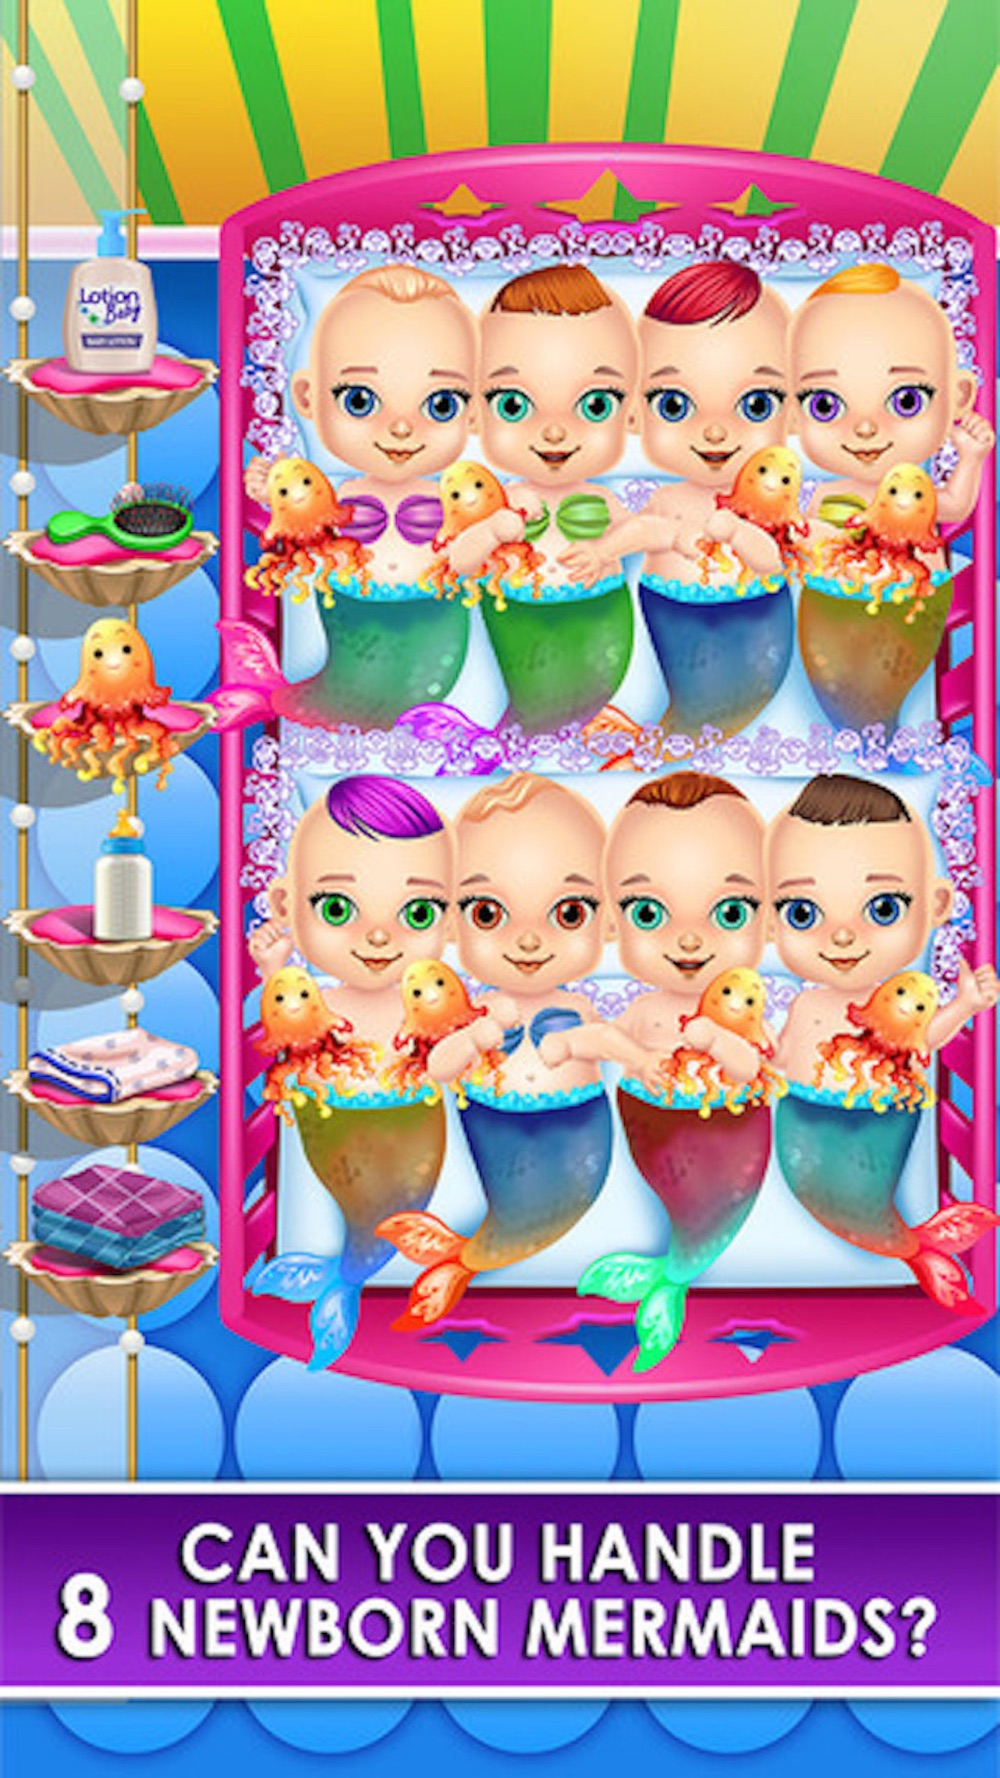 Mermaid Newborn Babies Care – Mommy's Octuplets Baby Salon Doctor Game Cheat Codes